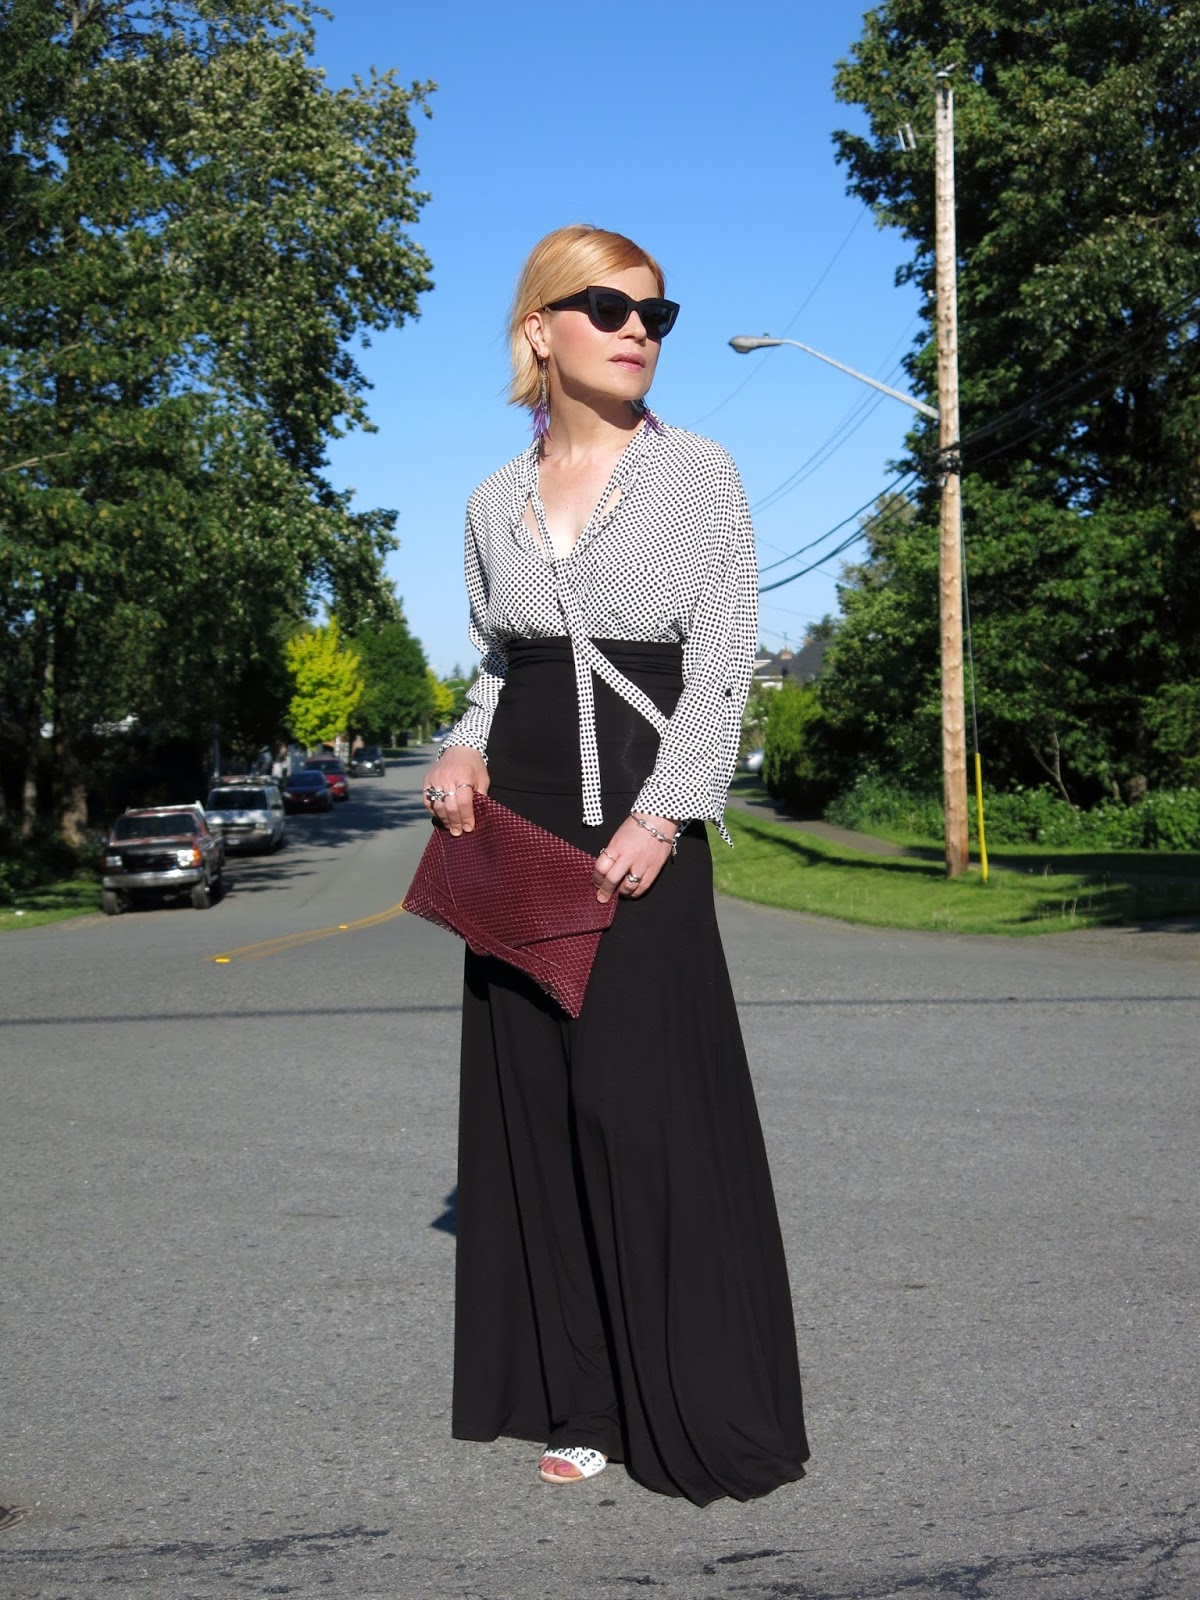 Time travel: black maxi skirt, dotted blouse, cat-eye sunglasses, and reptile envelope clutch